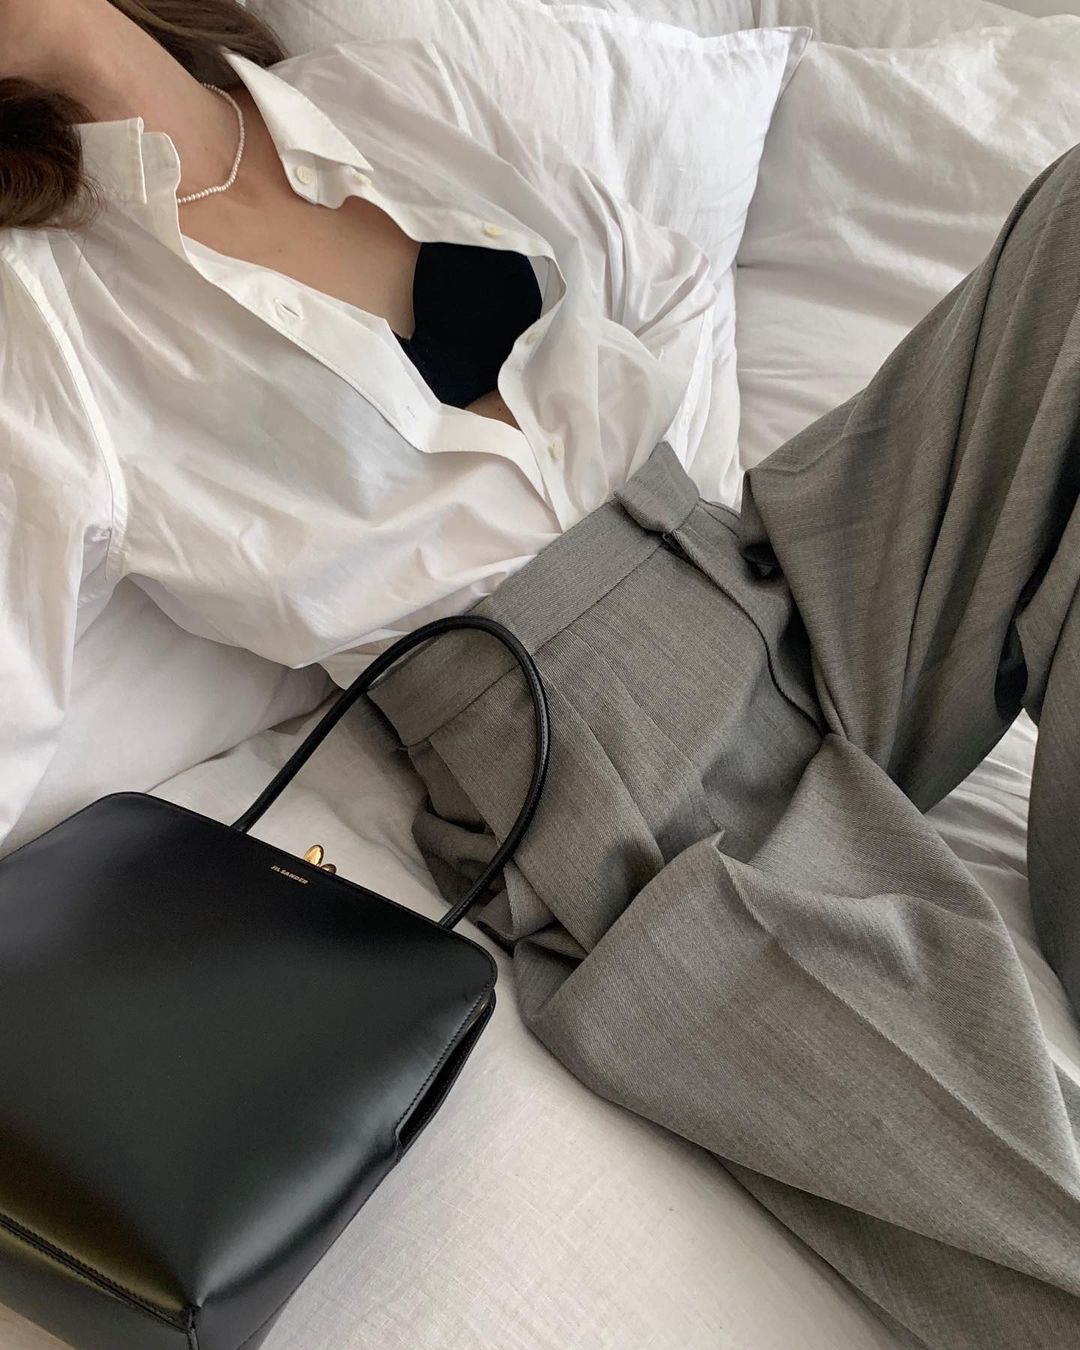 beatrice-gutu-jw-anderson-tailored-trouser-instagram